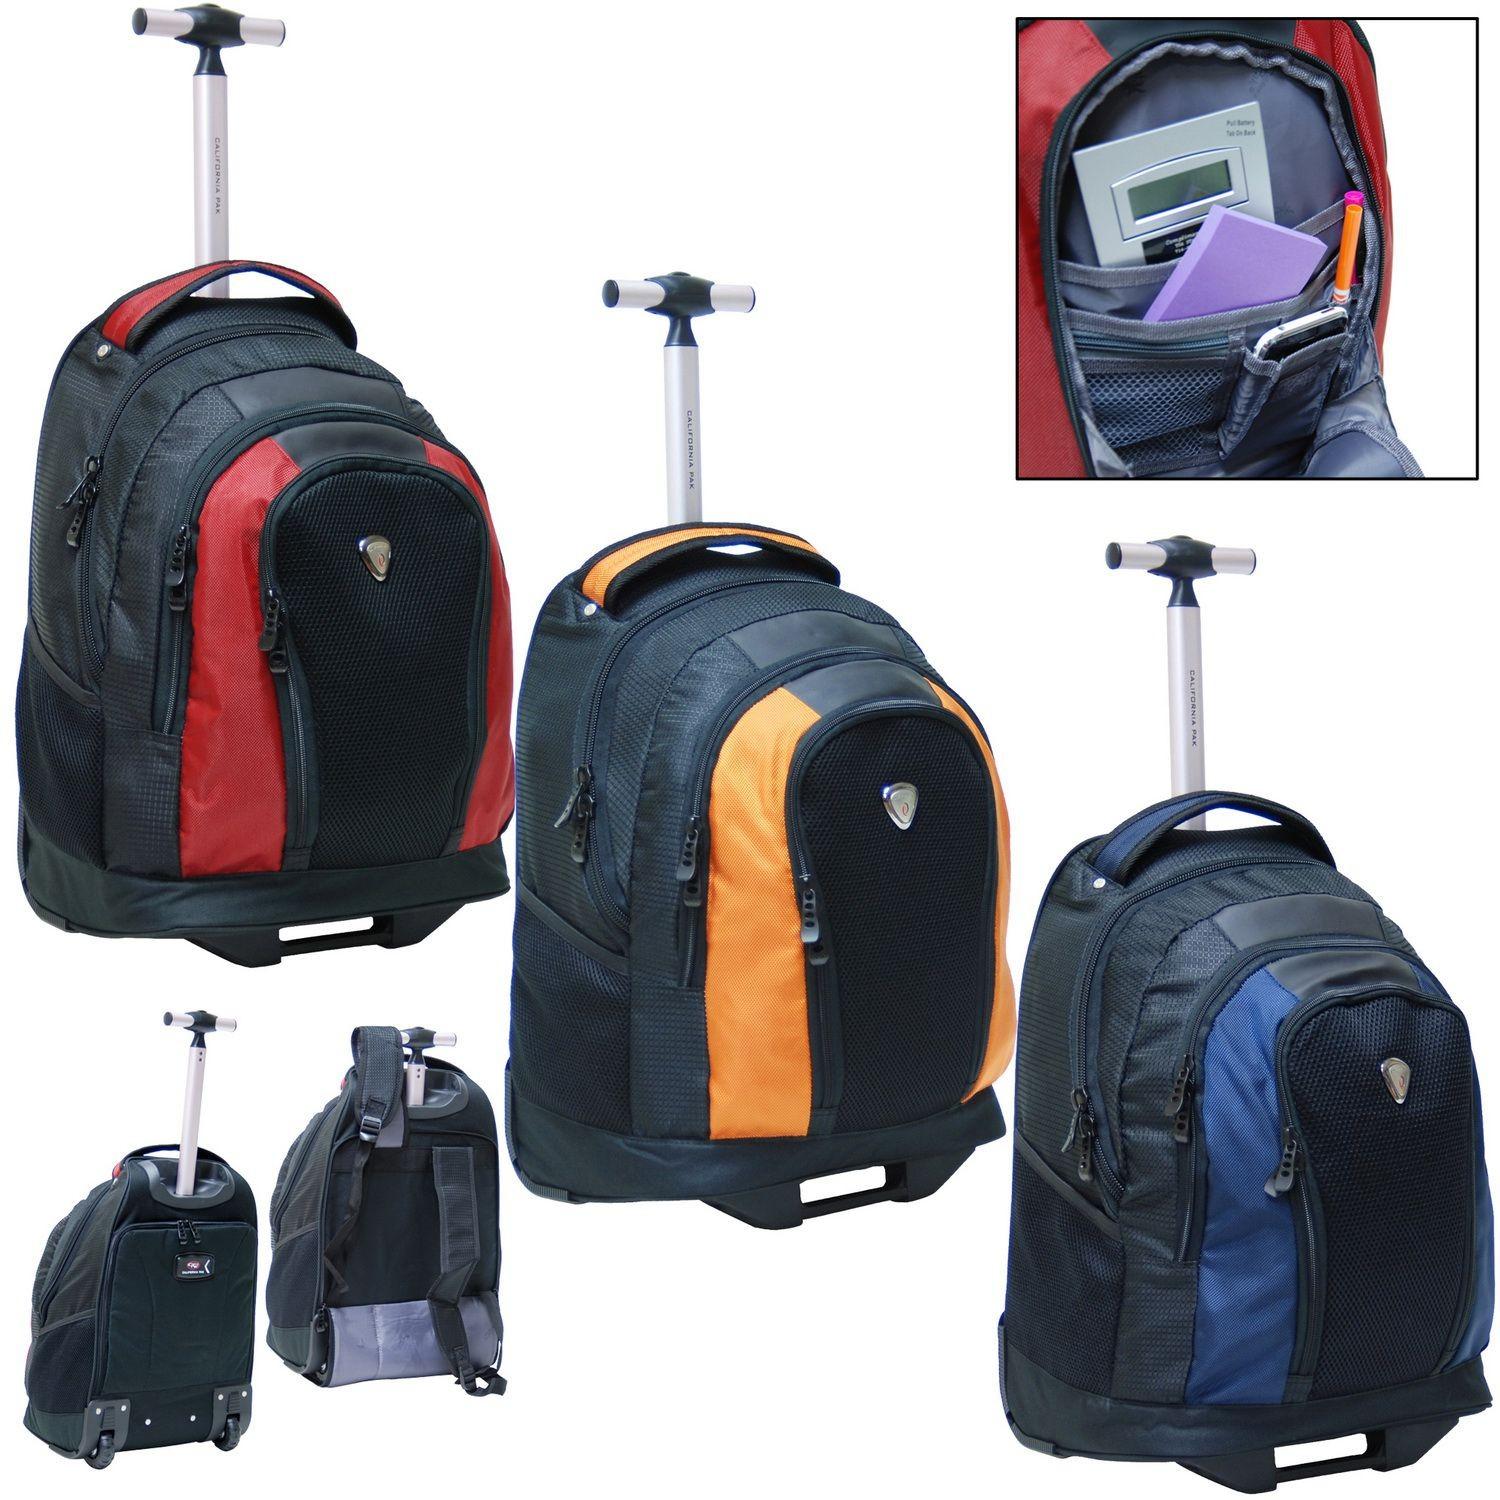 Calpak Rbp015 18 Inch Element Rolling Backpack